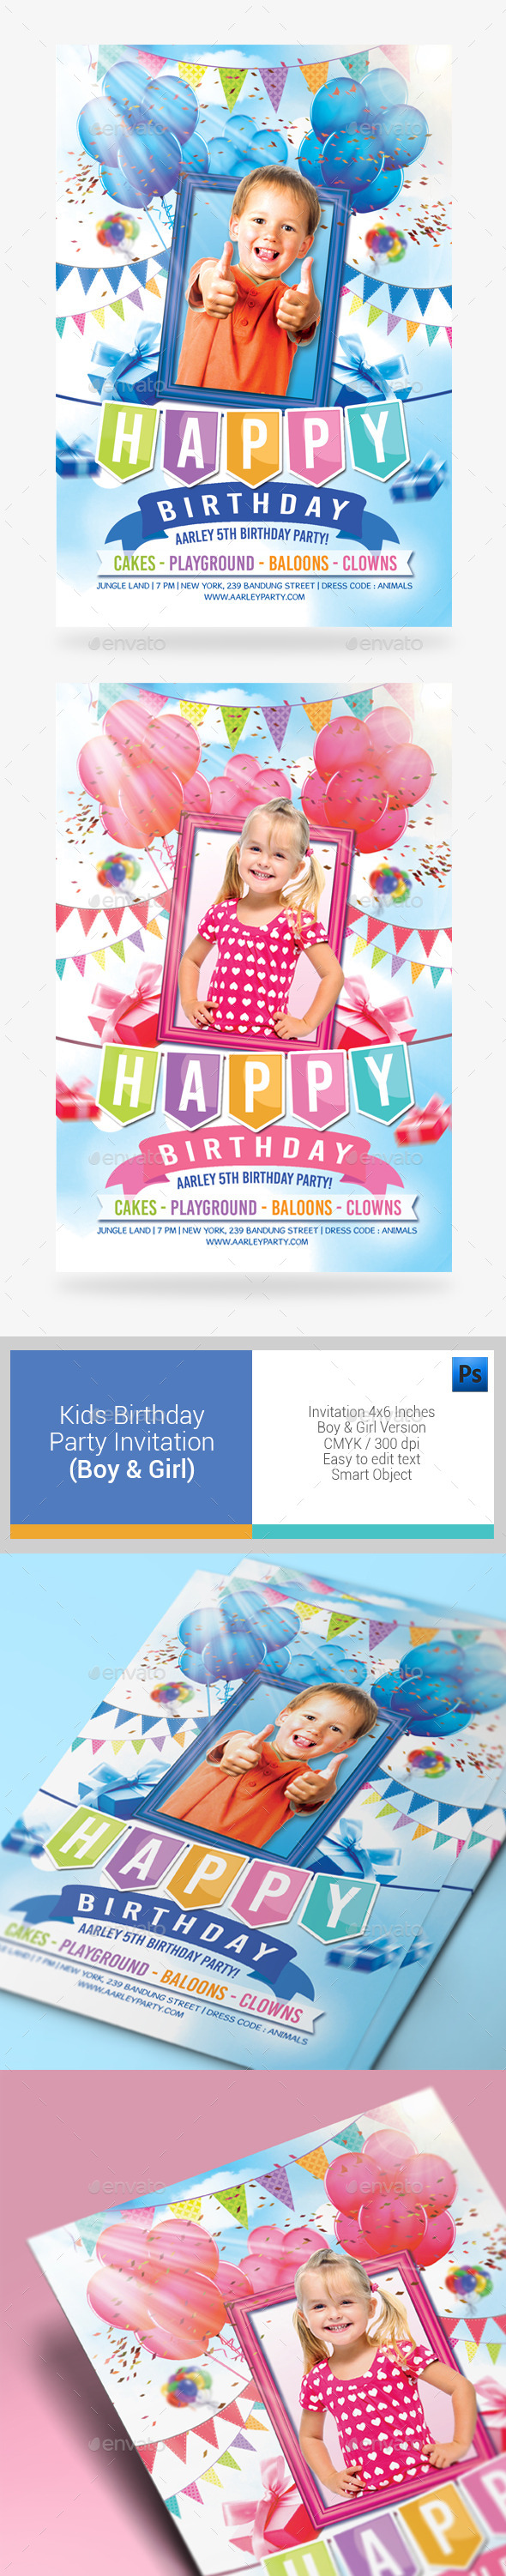 Kids Birthday Party Invitation ( Boy & Girl ) - Birthday Greeting Cards